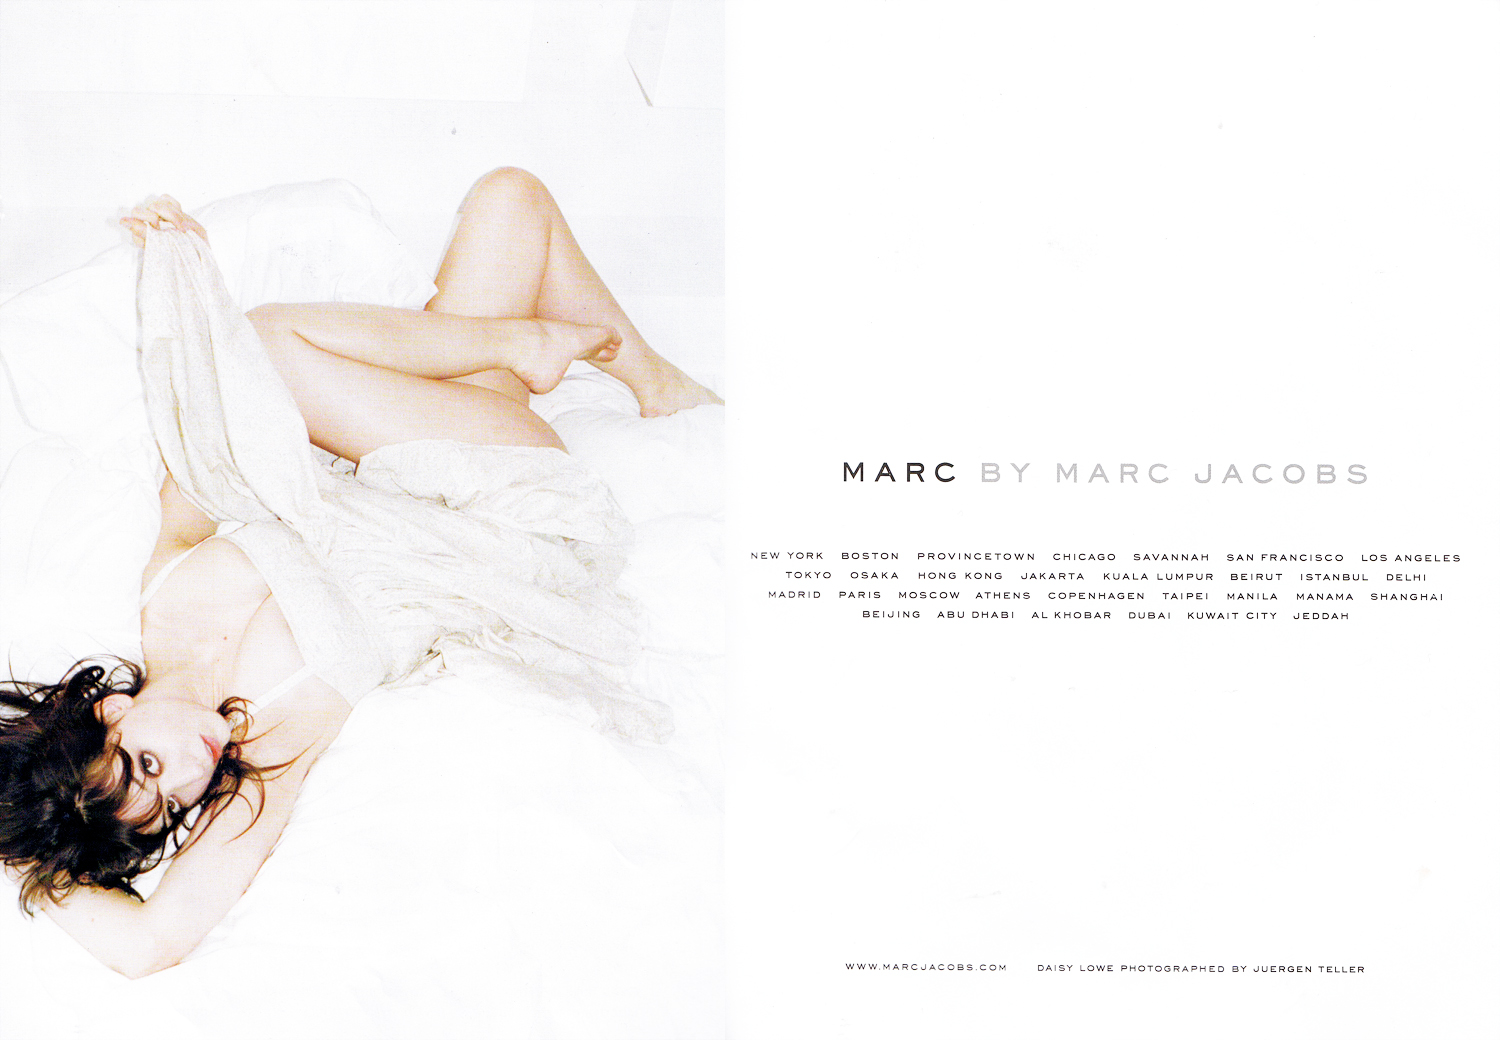 A fake Marc Jacobs ad in